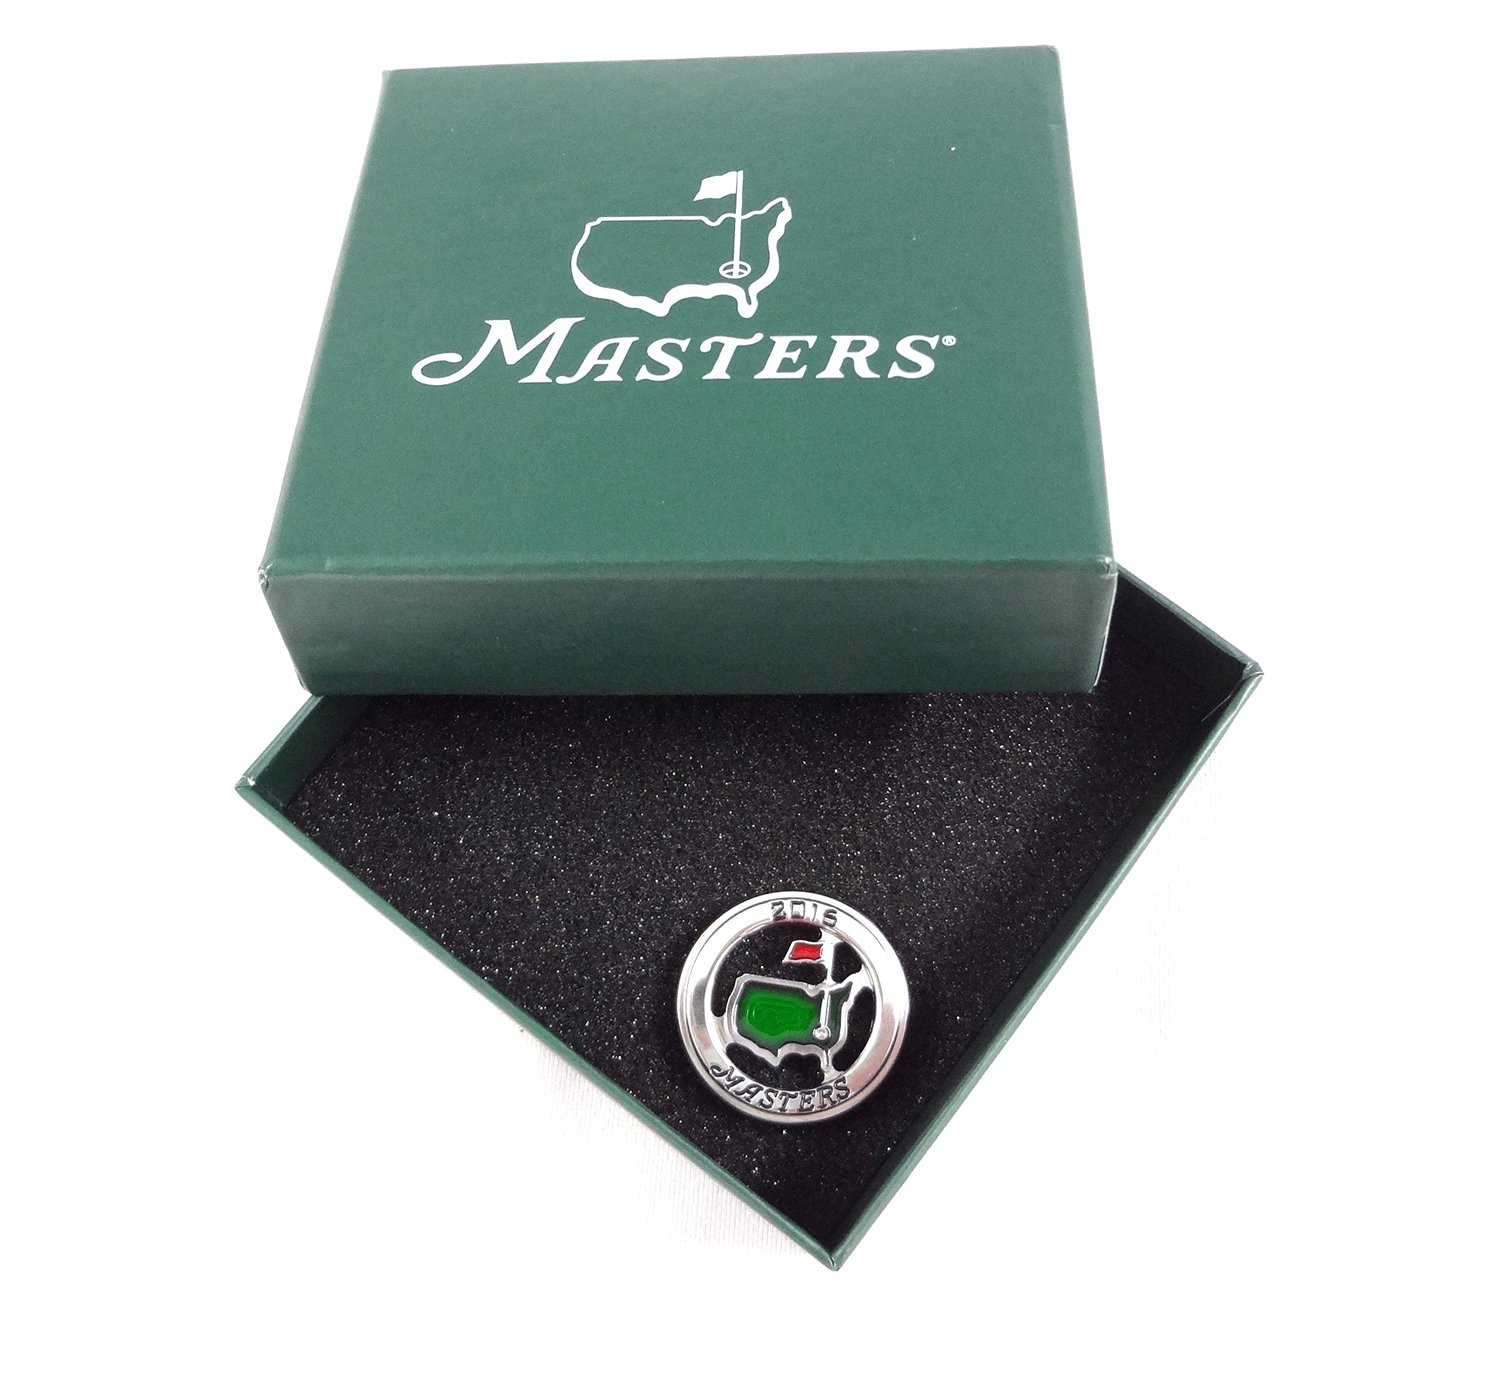 RARE Scotty Cameron 2016 Masters Augusta National Hand Crafted Golf Ball Marker by Masters (Image #2)